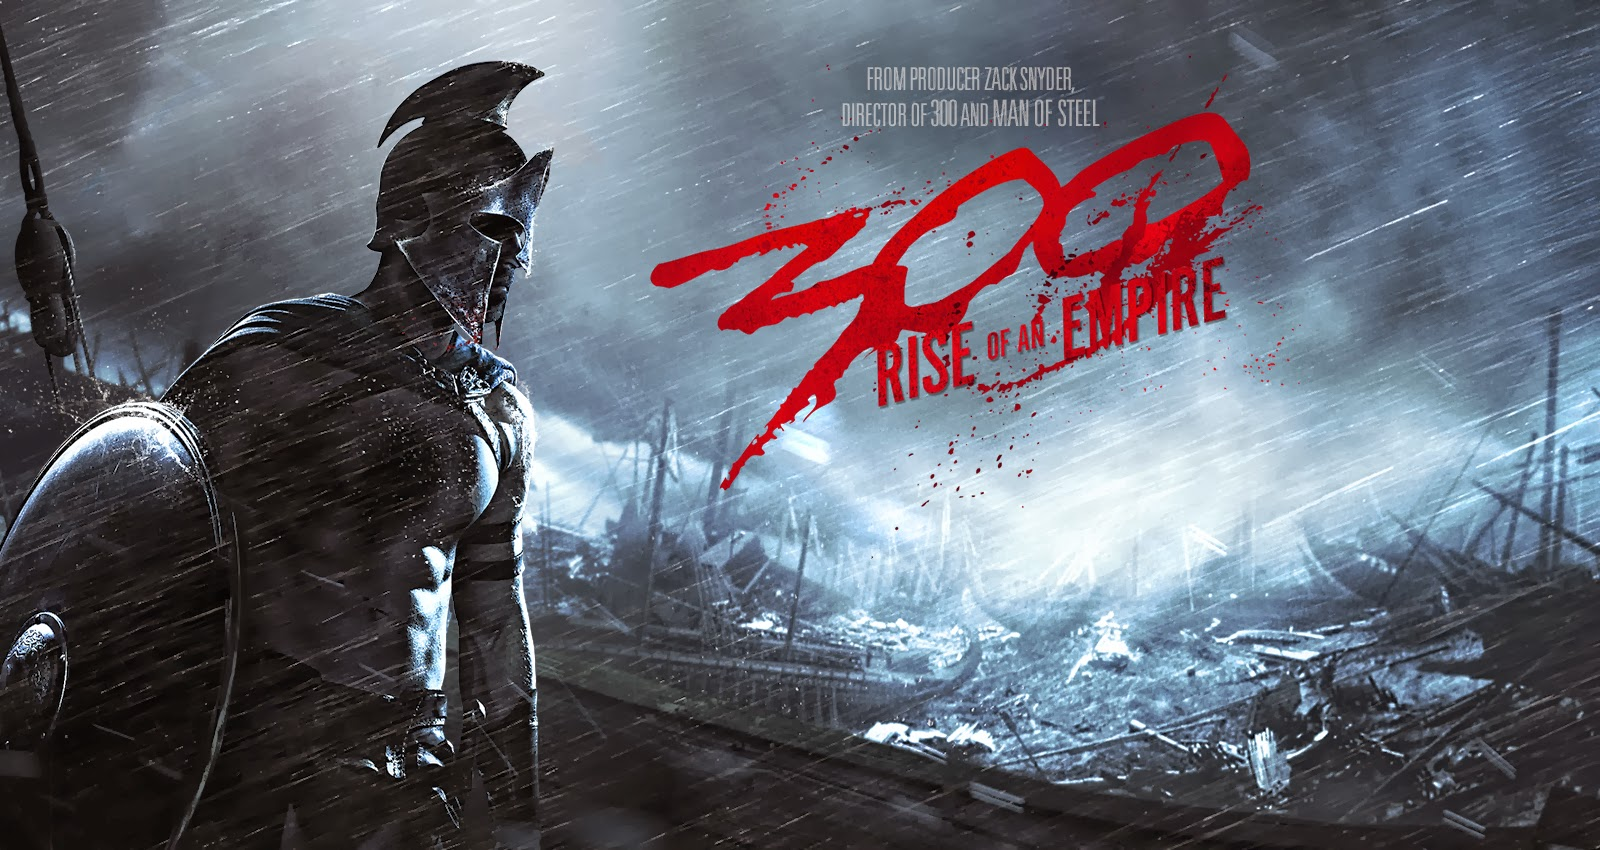 watch 300 full movie free online